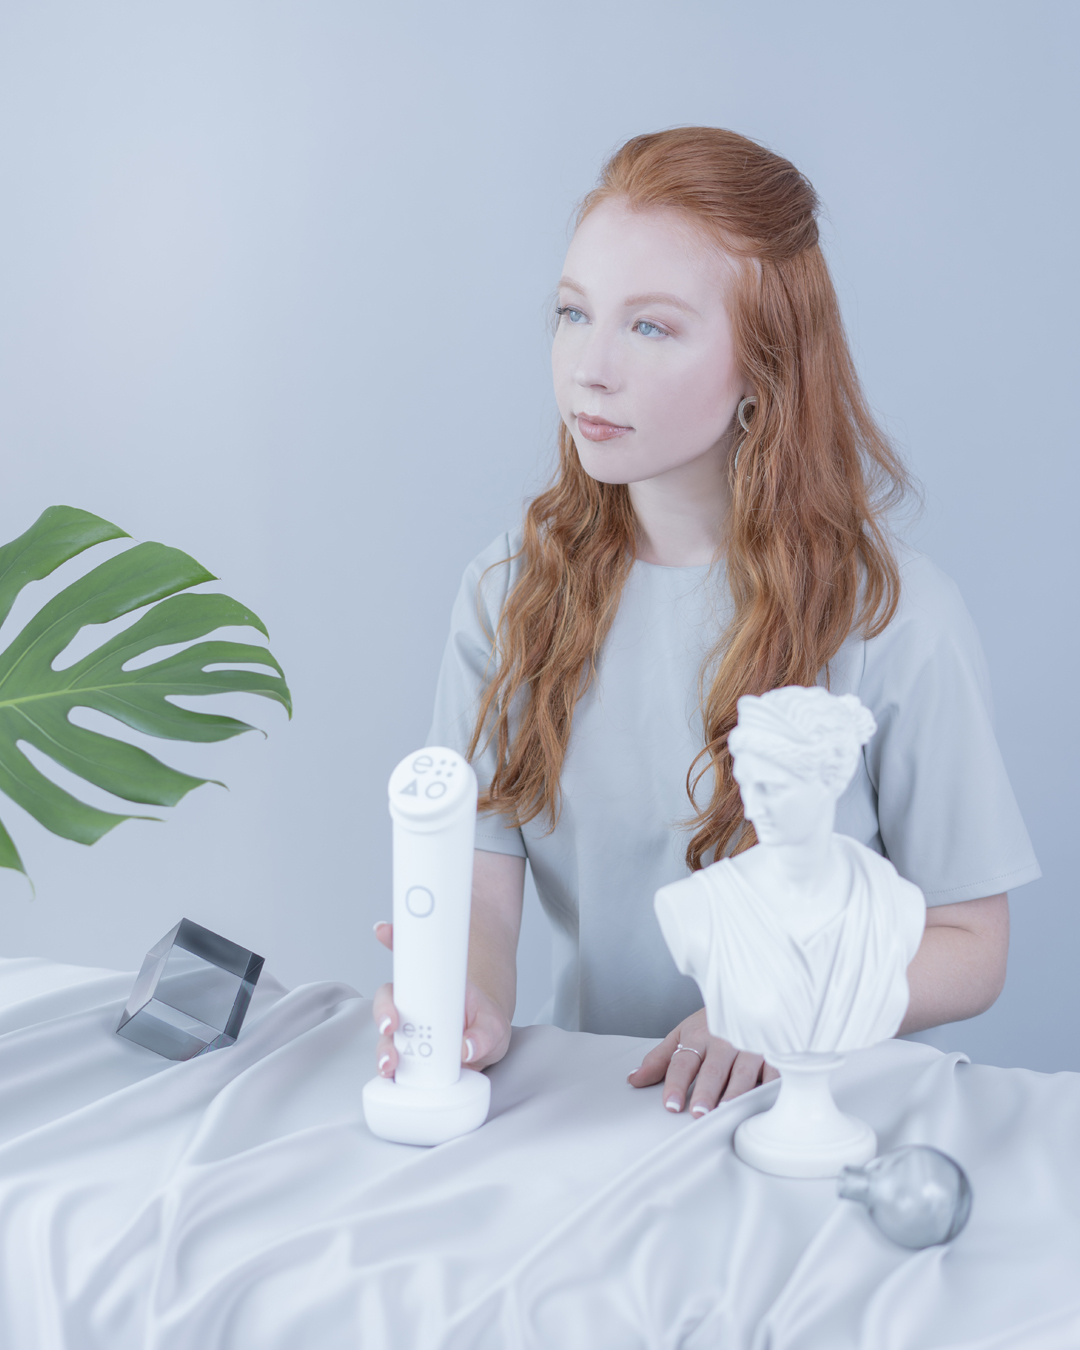 ETERNO SKINCARE   Social Media Campaign - PHOTOGRAPHED BY KNOTably studio